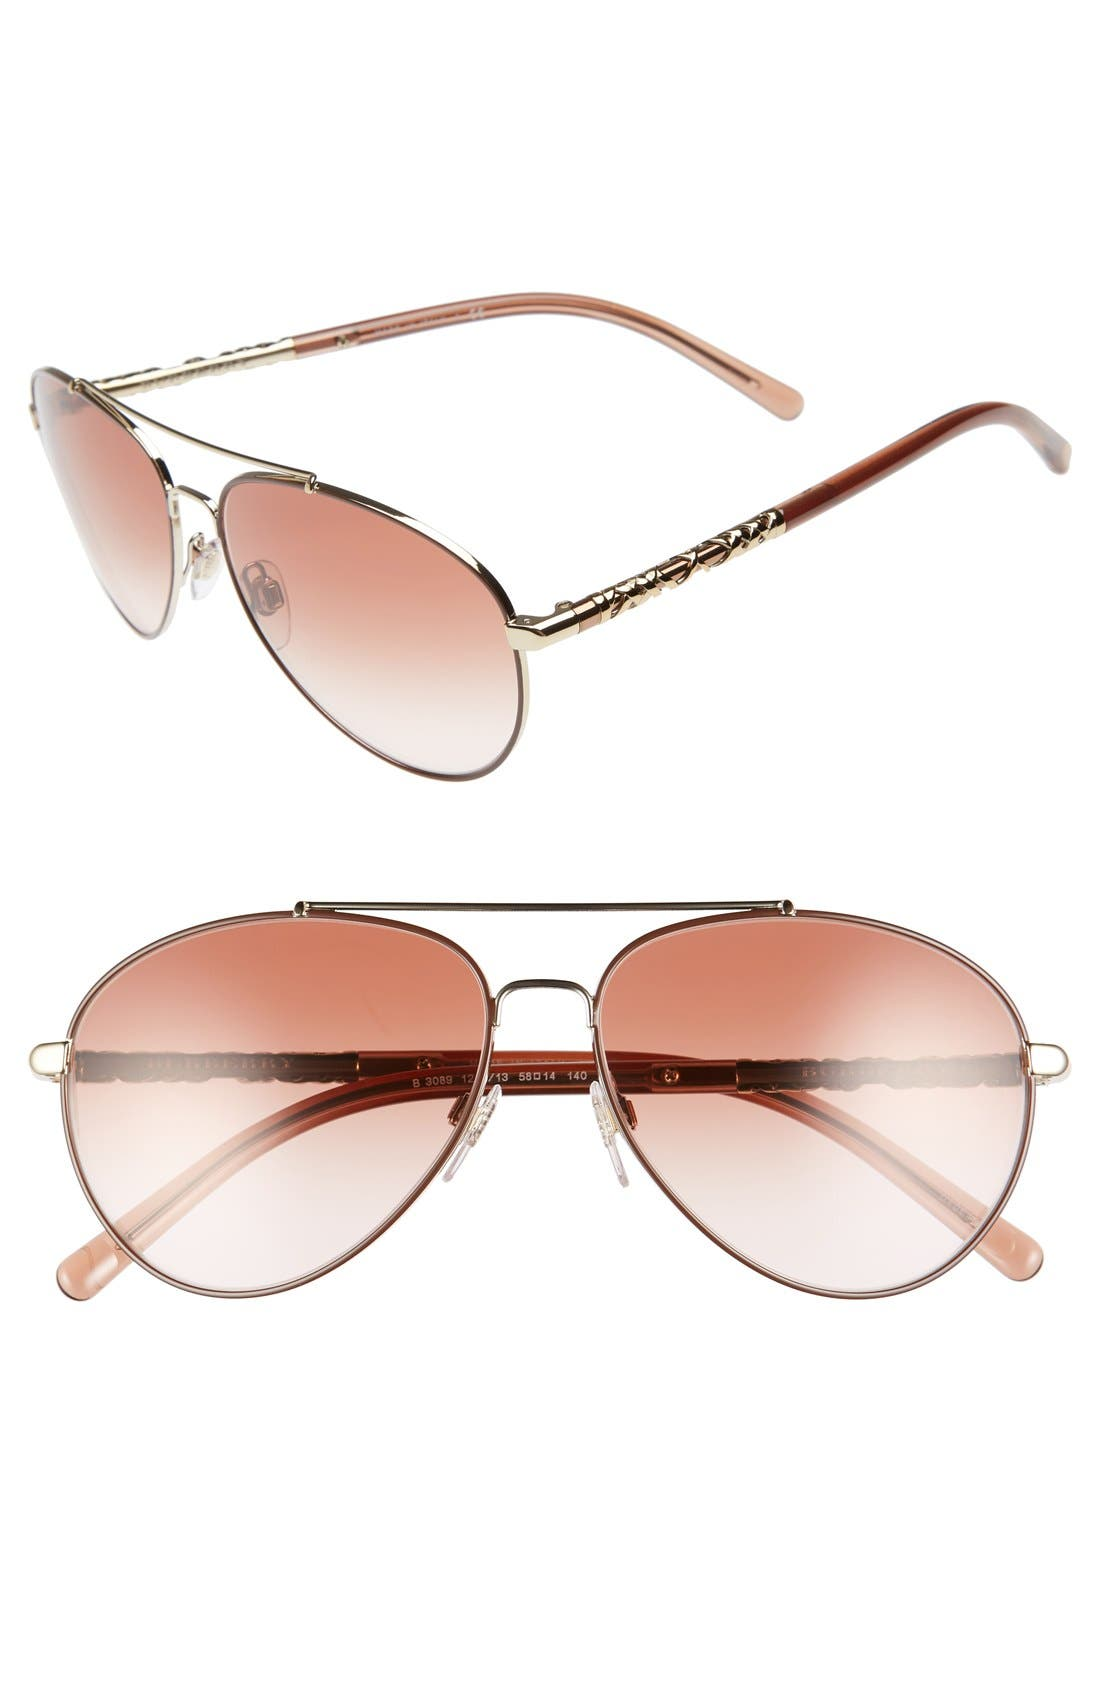 Alternate Image 1 Selected - Burberry 58mm Aviator Sunglasses